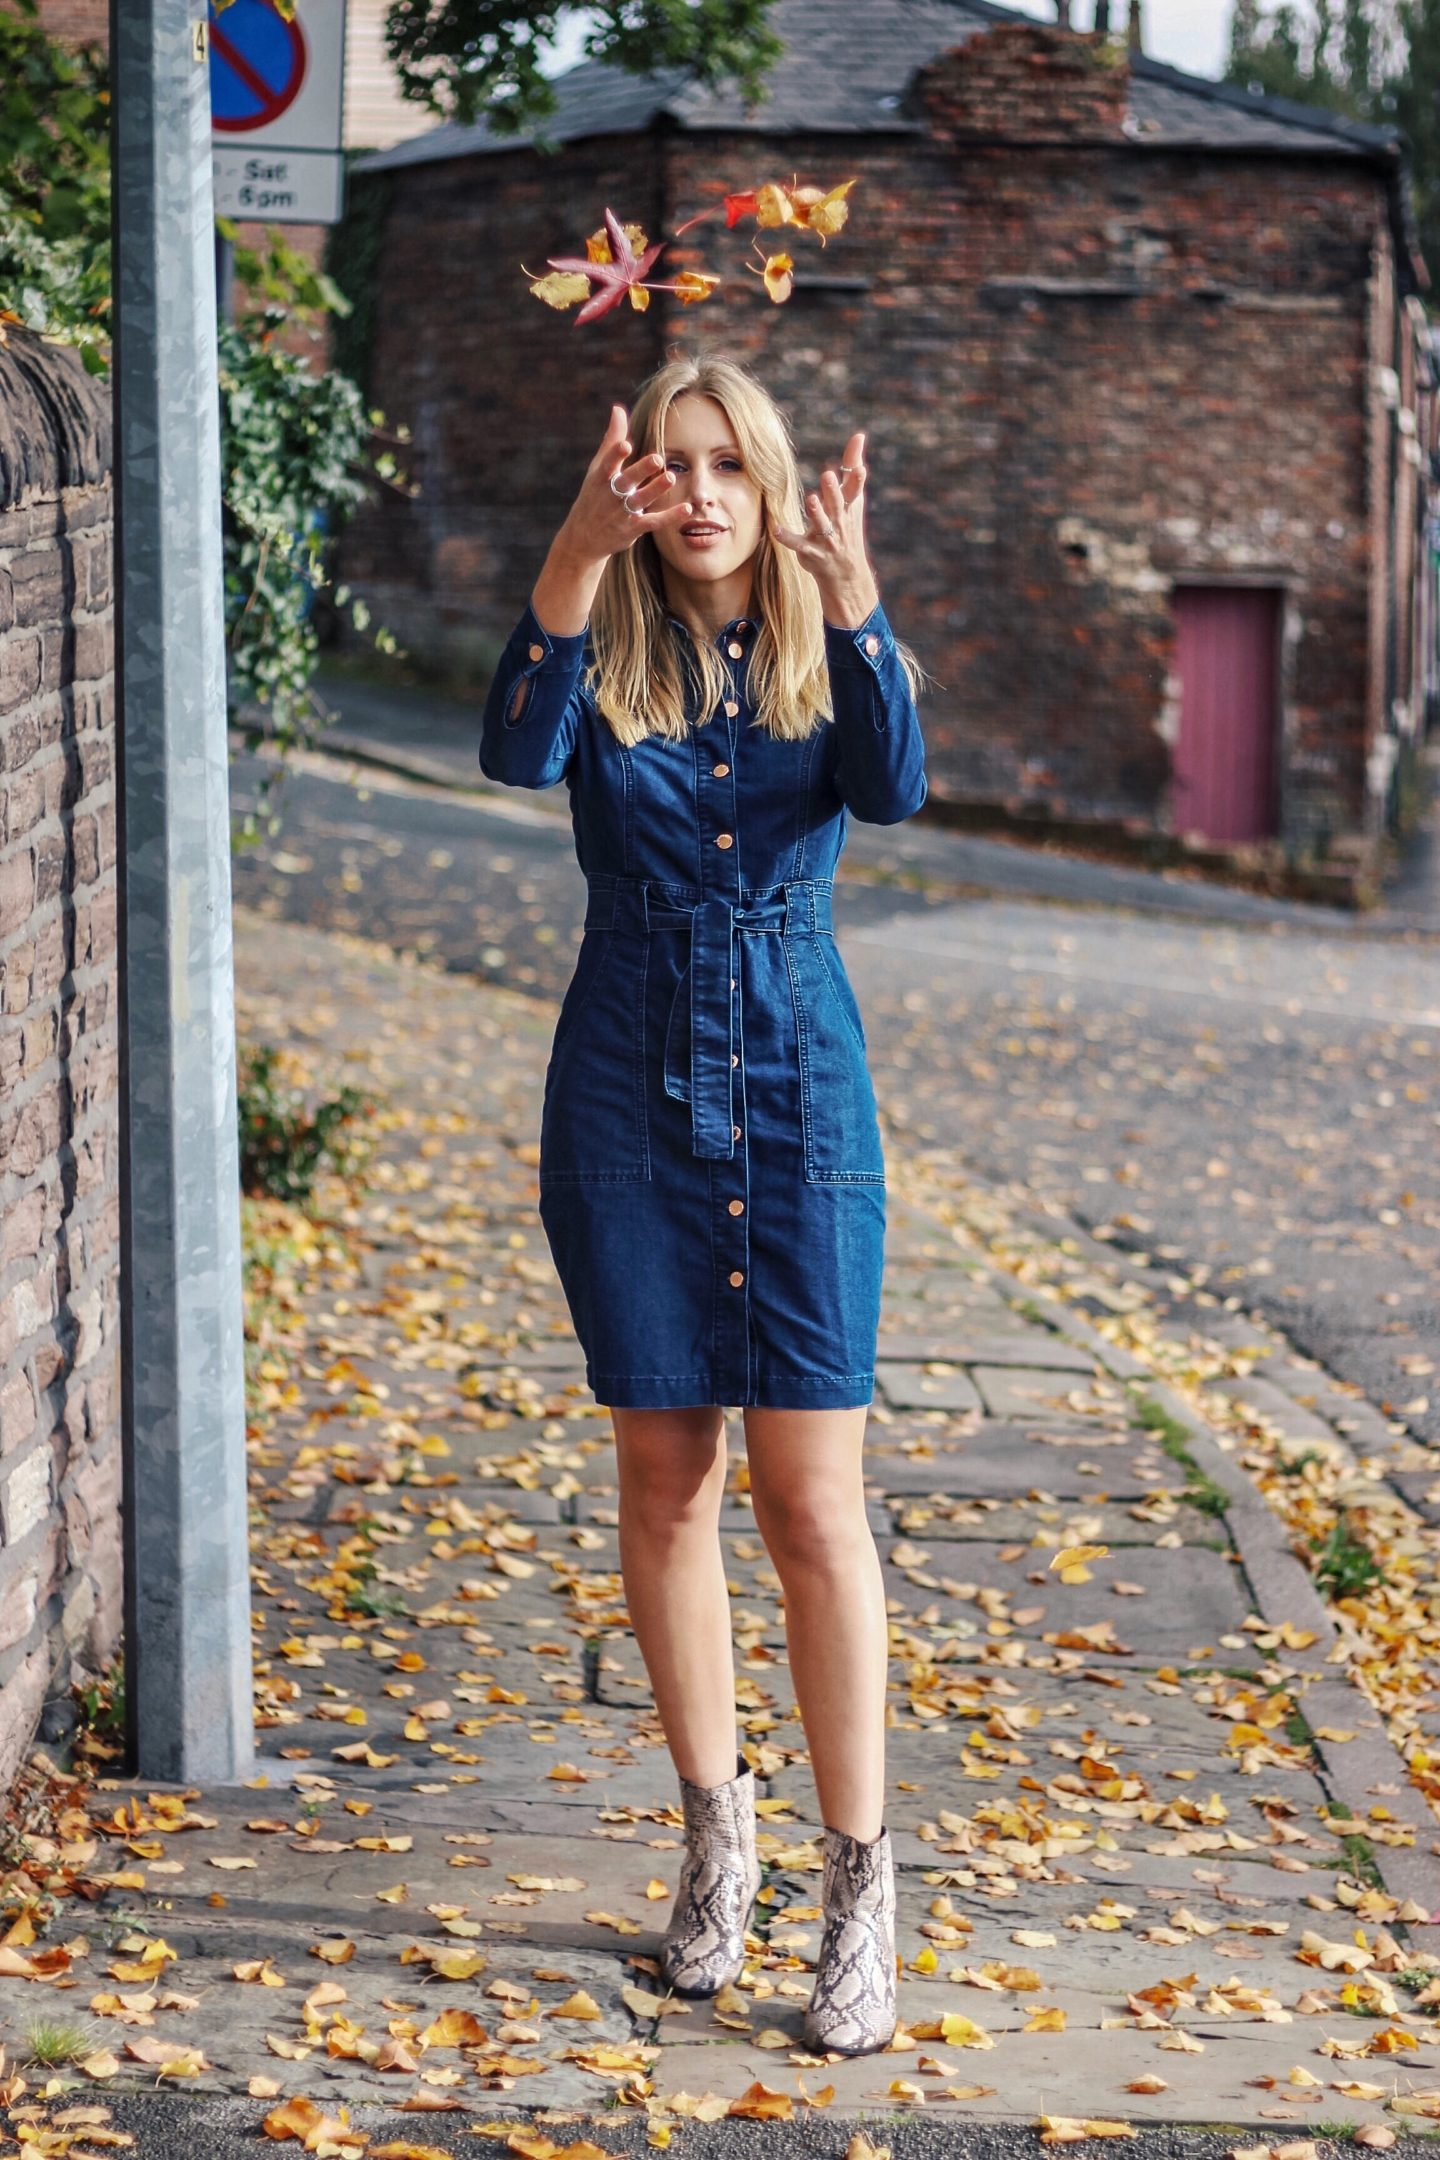 styling a denim dress for autumn